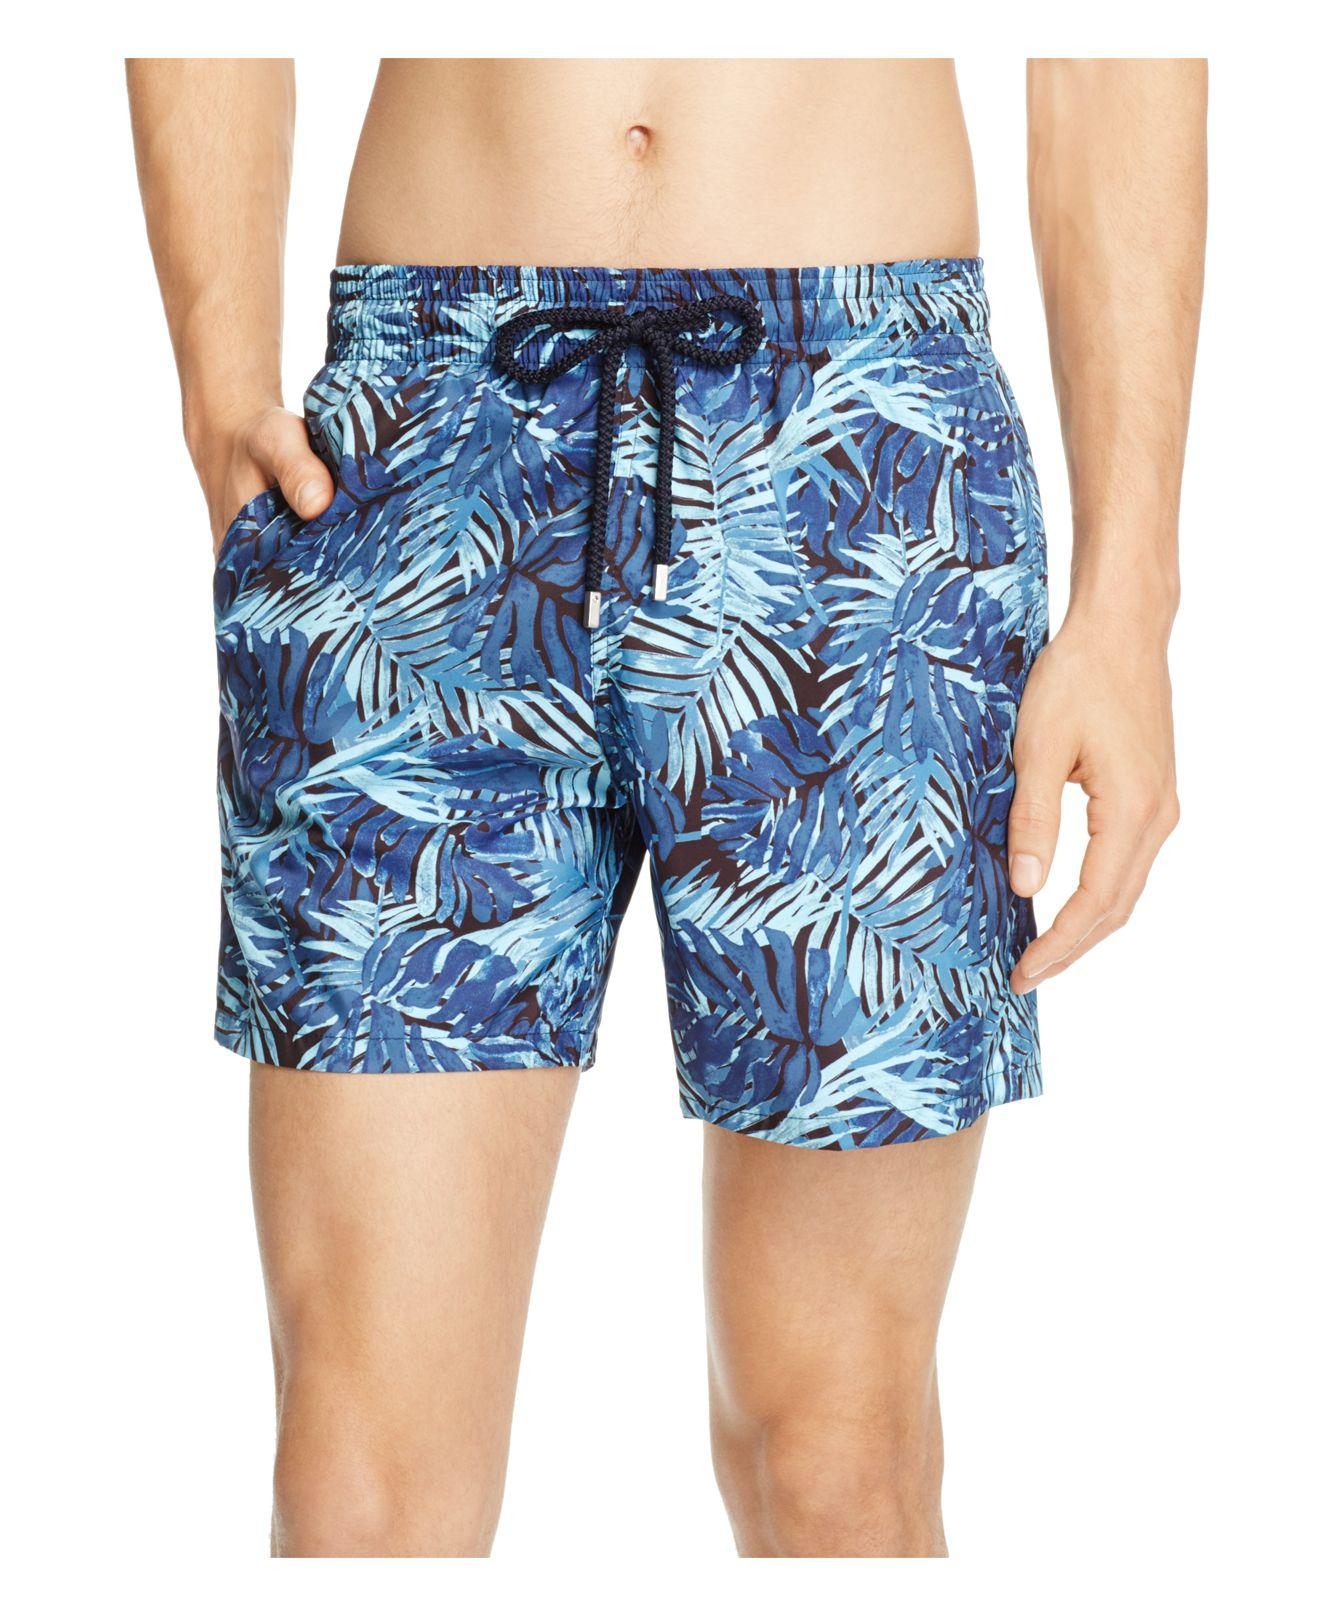 461e2ed1eb Lyst - Vilebrequin Mahina Madrague Printed Swim Trunks in Blue for Men